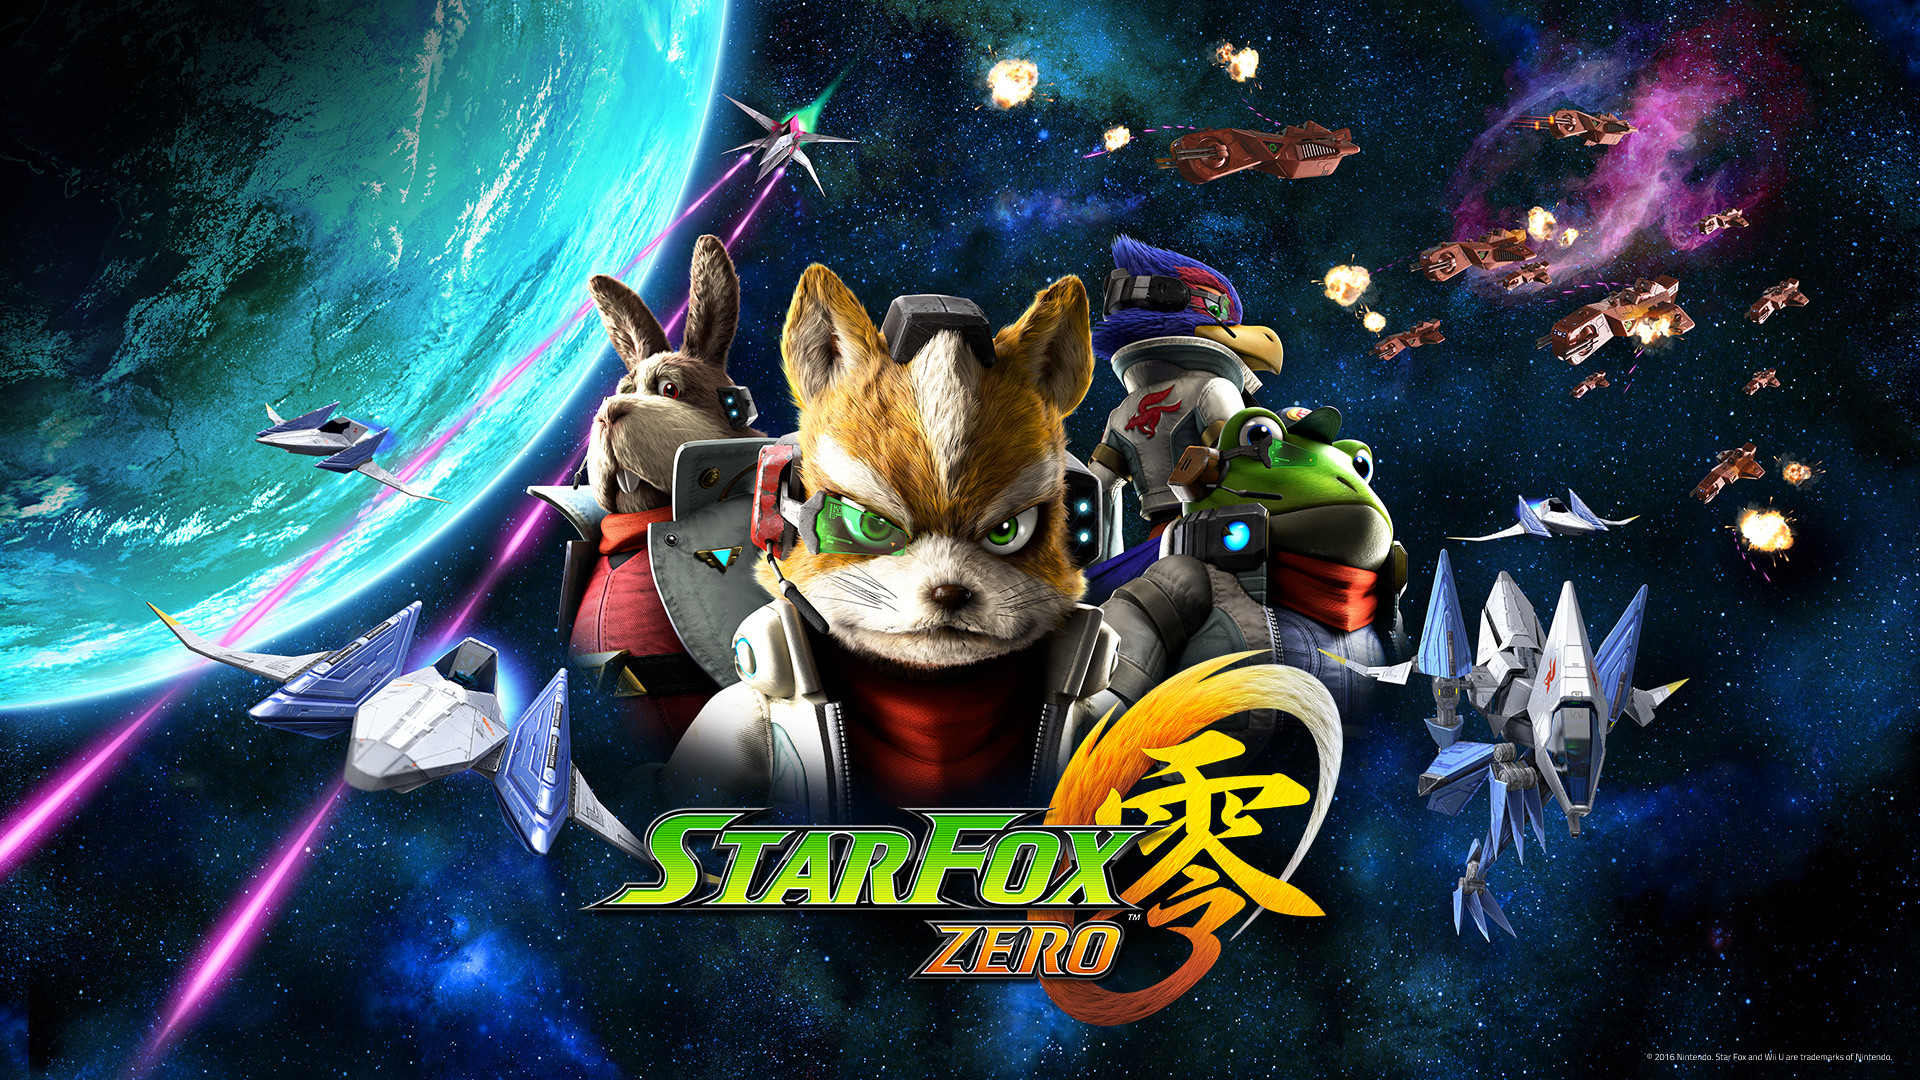 1920x1080 Wallpapers. Star Fox Zero Vehicles Wallpaper